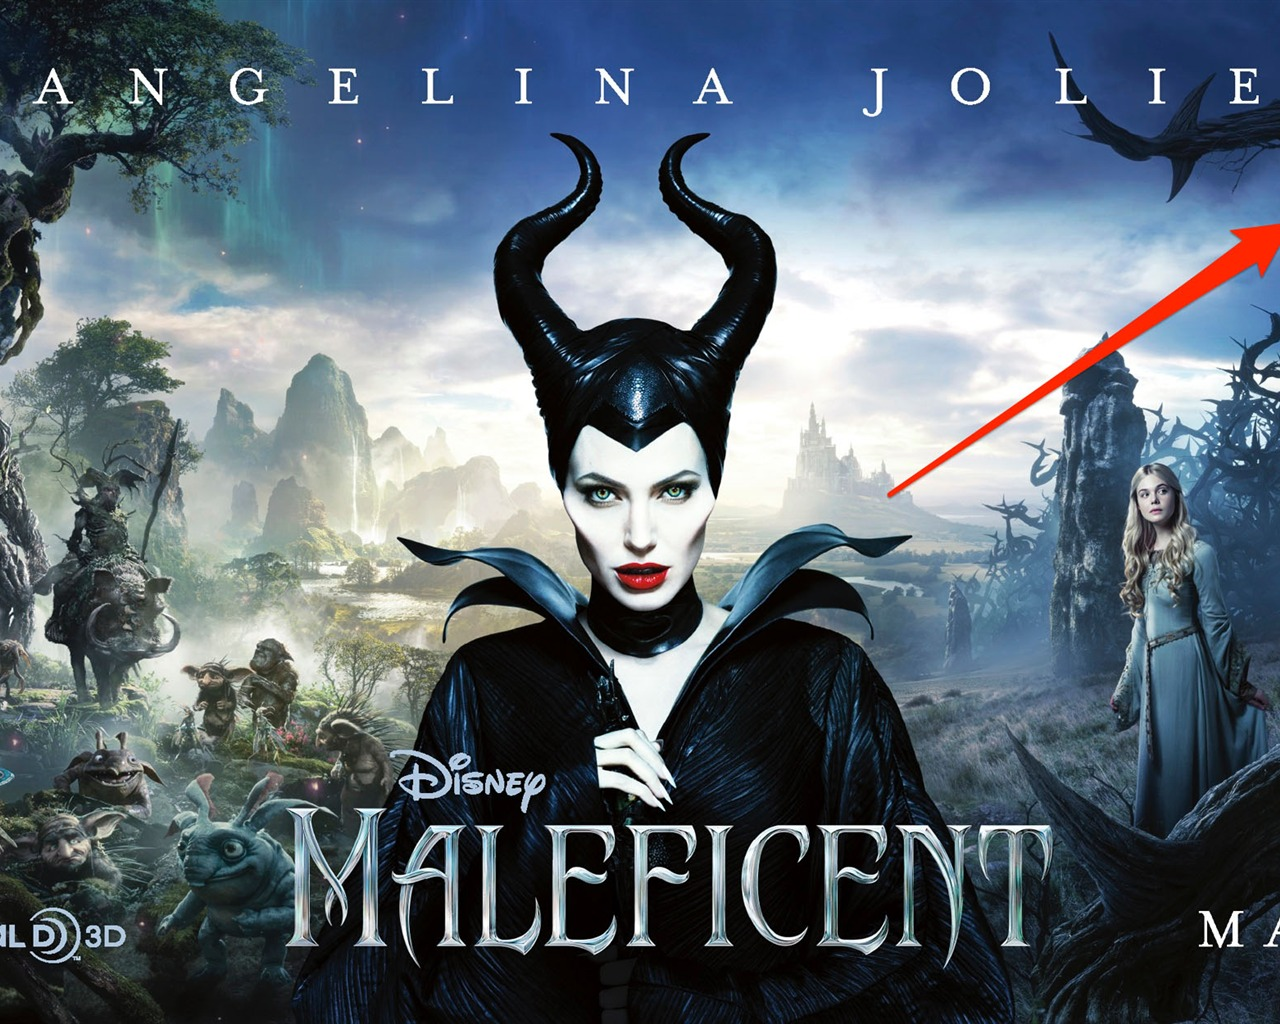 Maleficent Movie 2014 Hd Ipad Iphone Wallpapers: Maleficent 2014 Movie HD Desktop Wallpaper 04 Preview